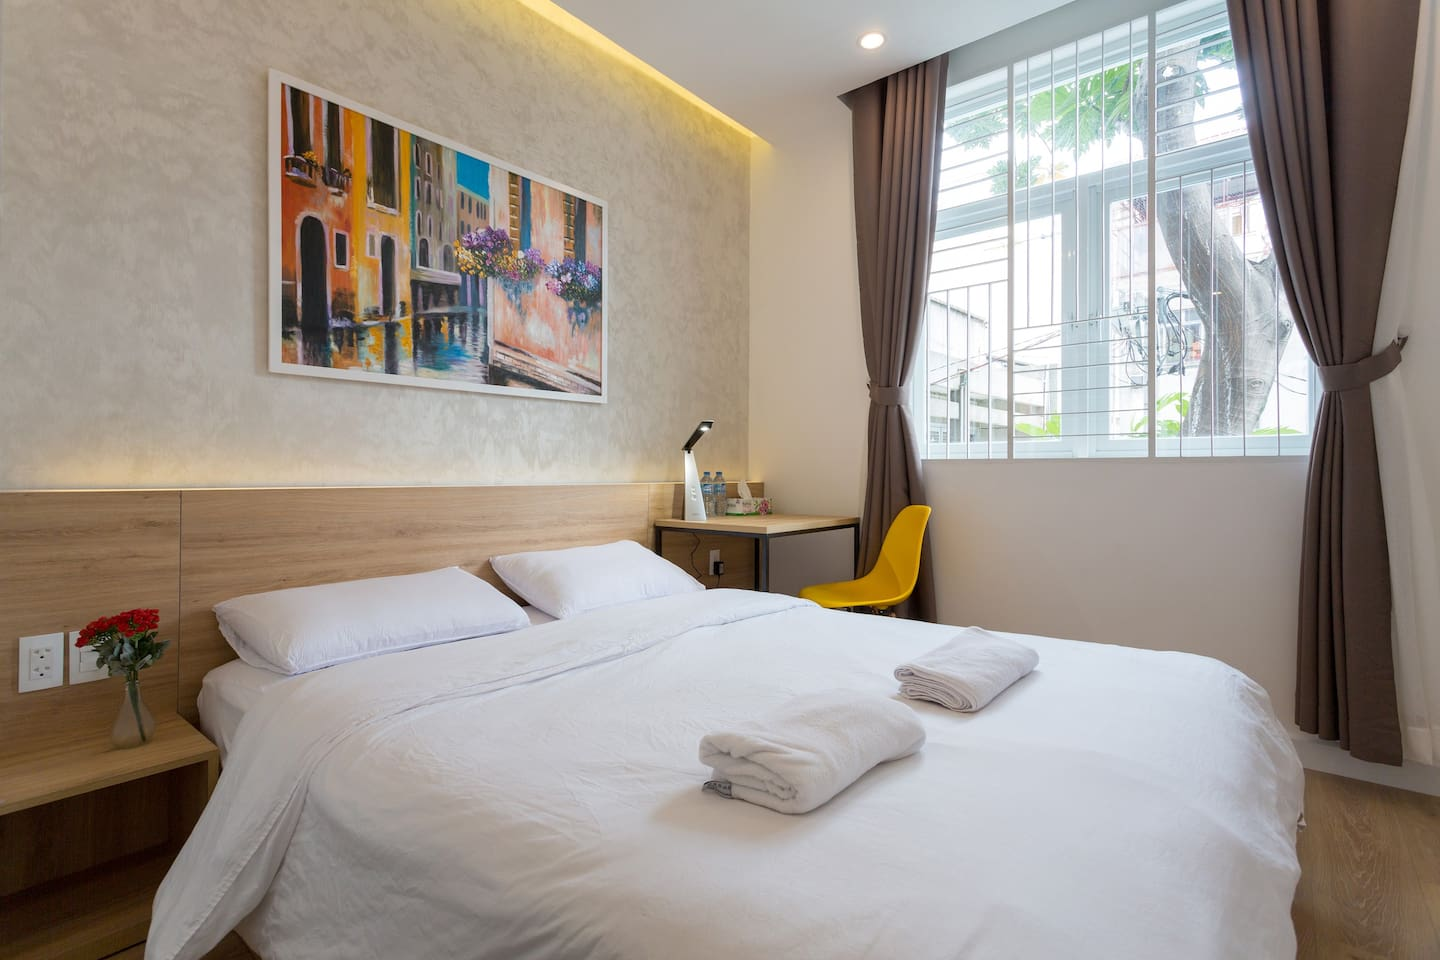 Your room with natural light, working desk, wardrobe, private bathroom and clean beddings and towels